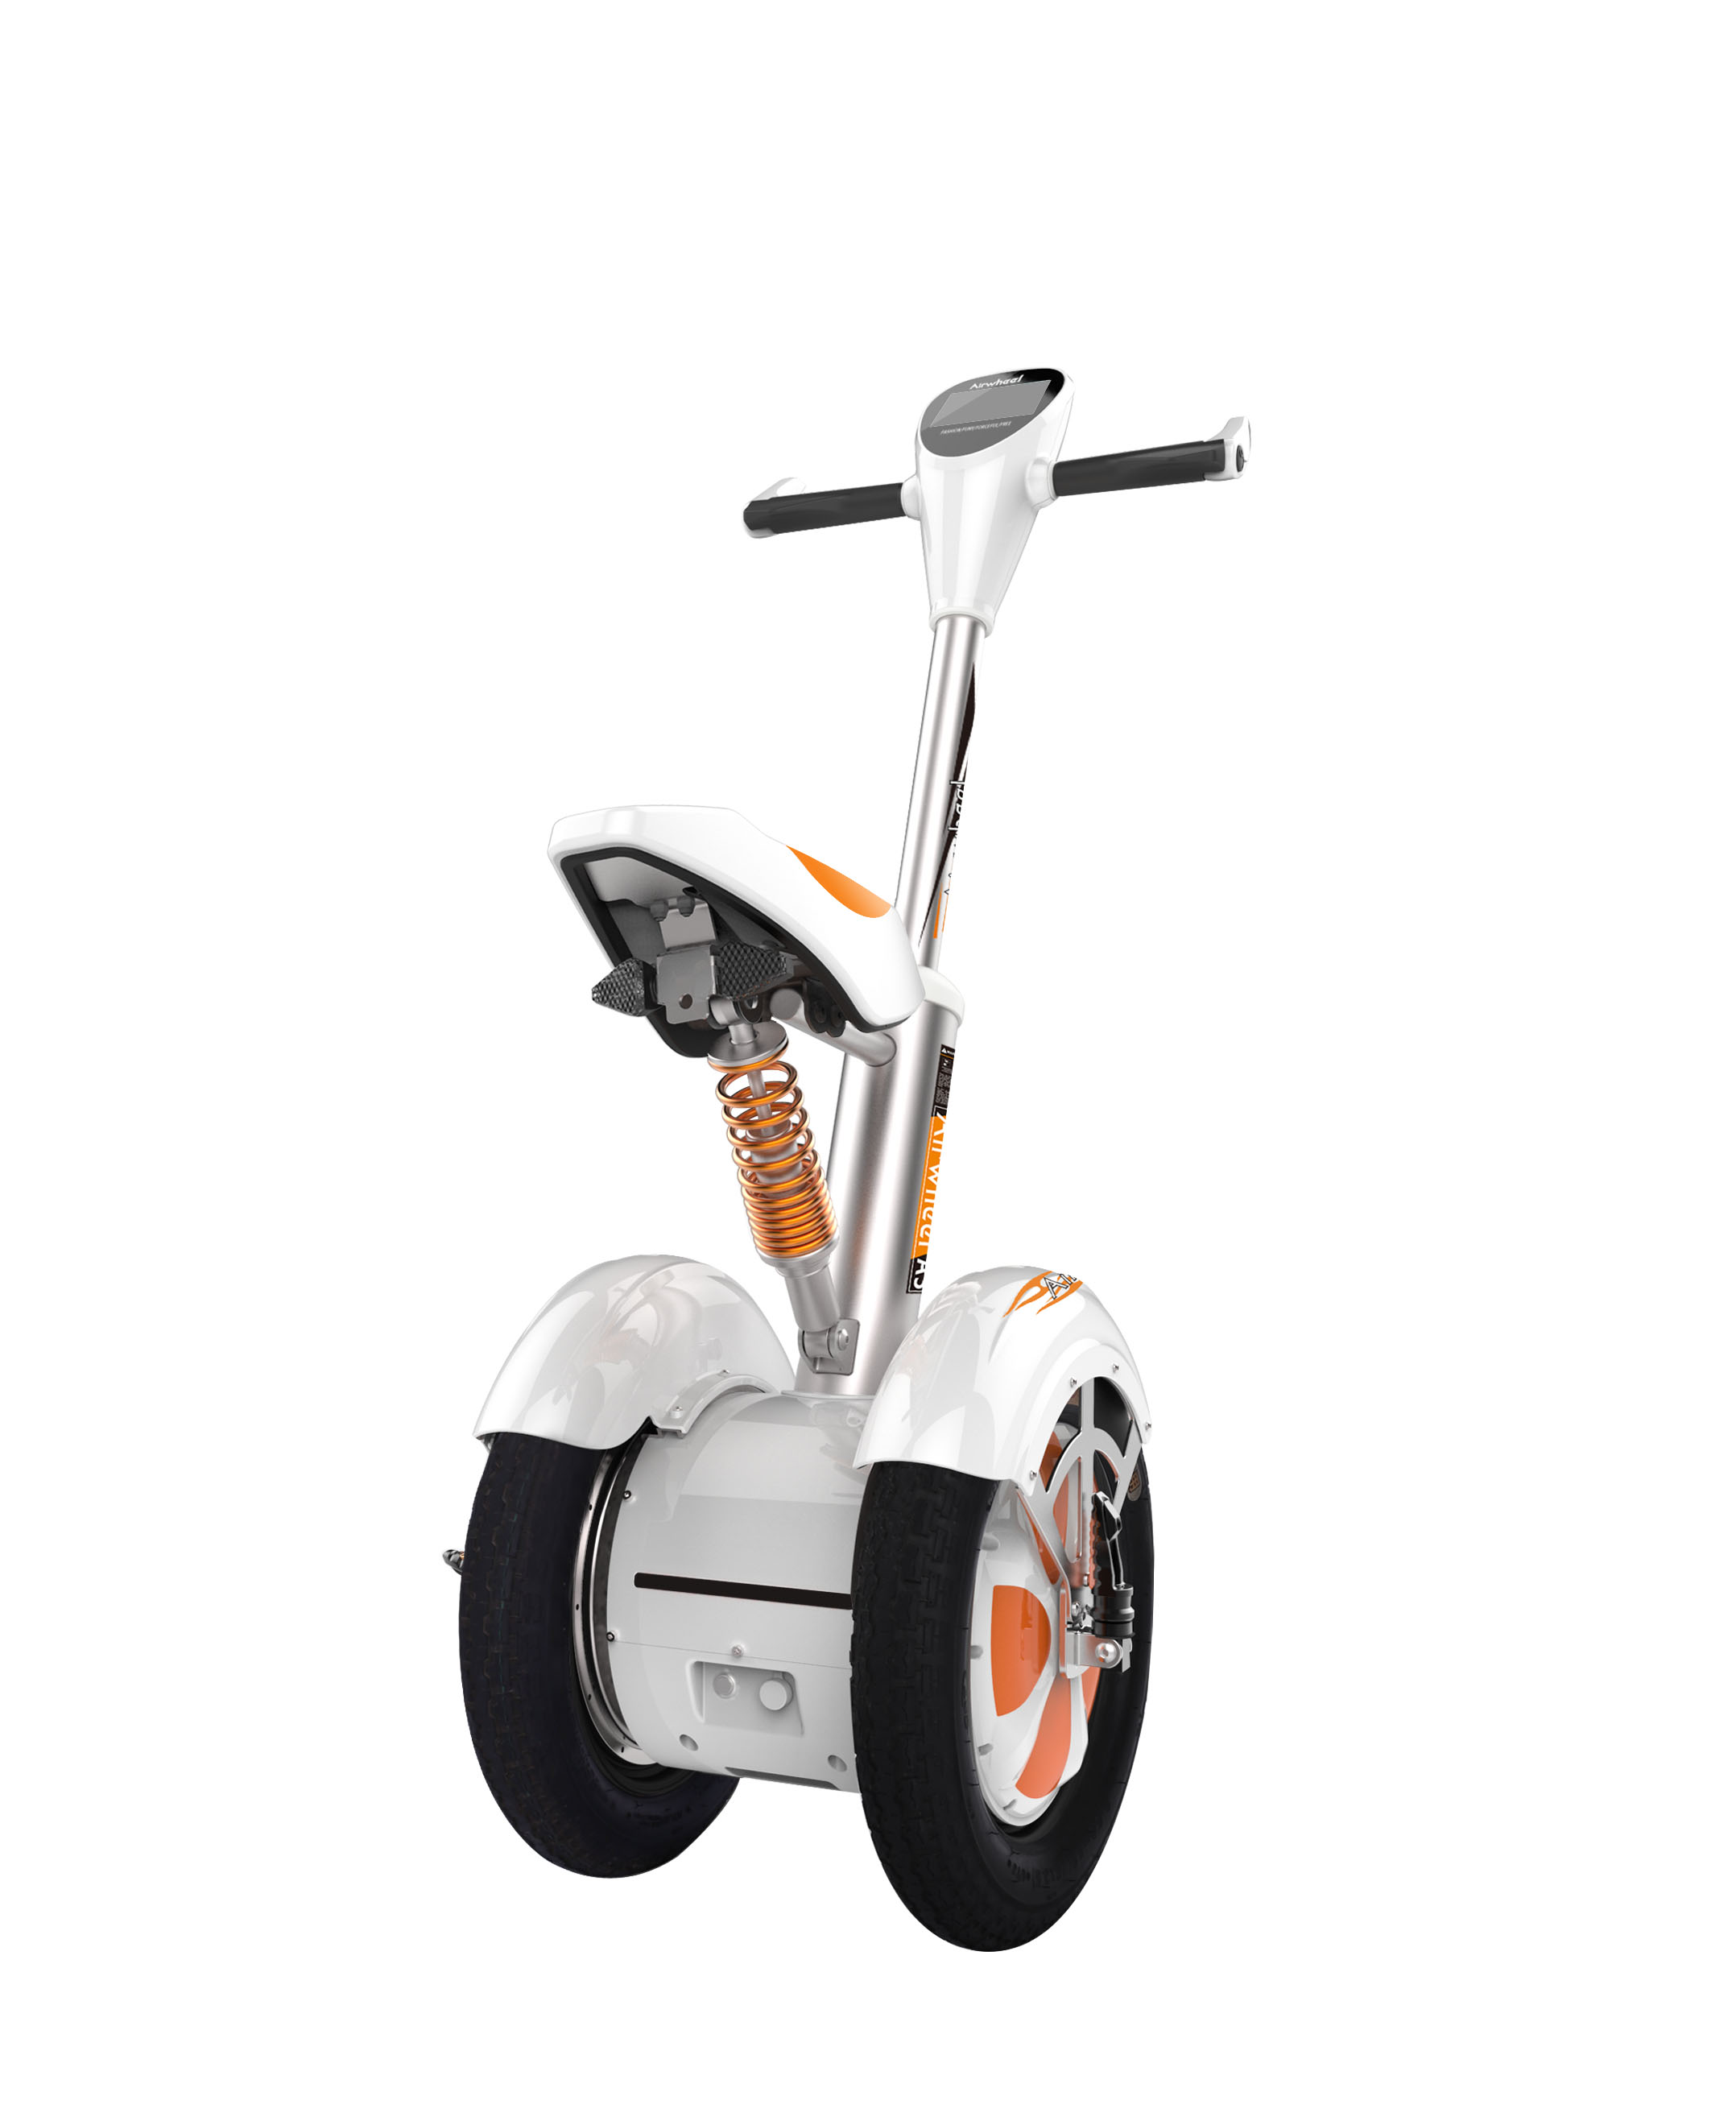 http://www.airwheel.net/images/Airwheel_0_A3.jpg